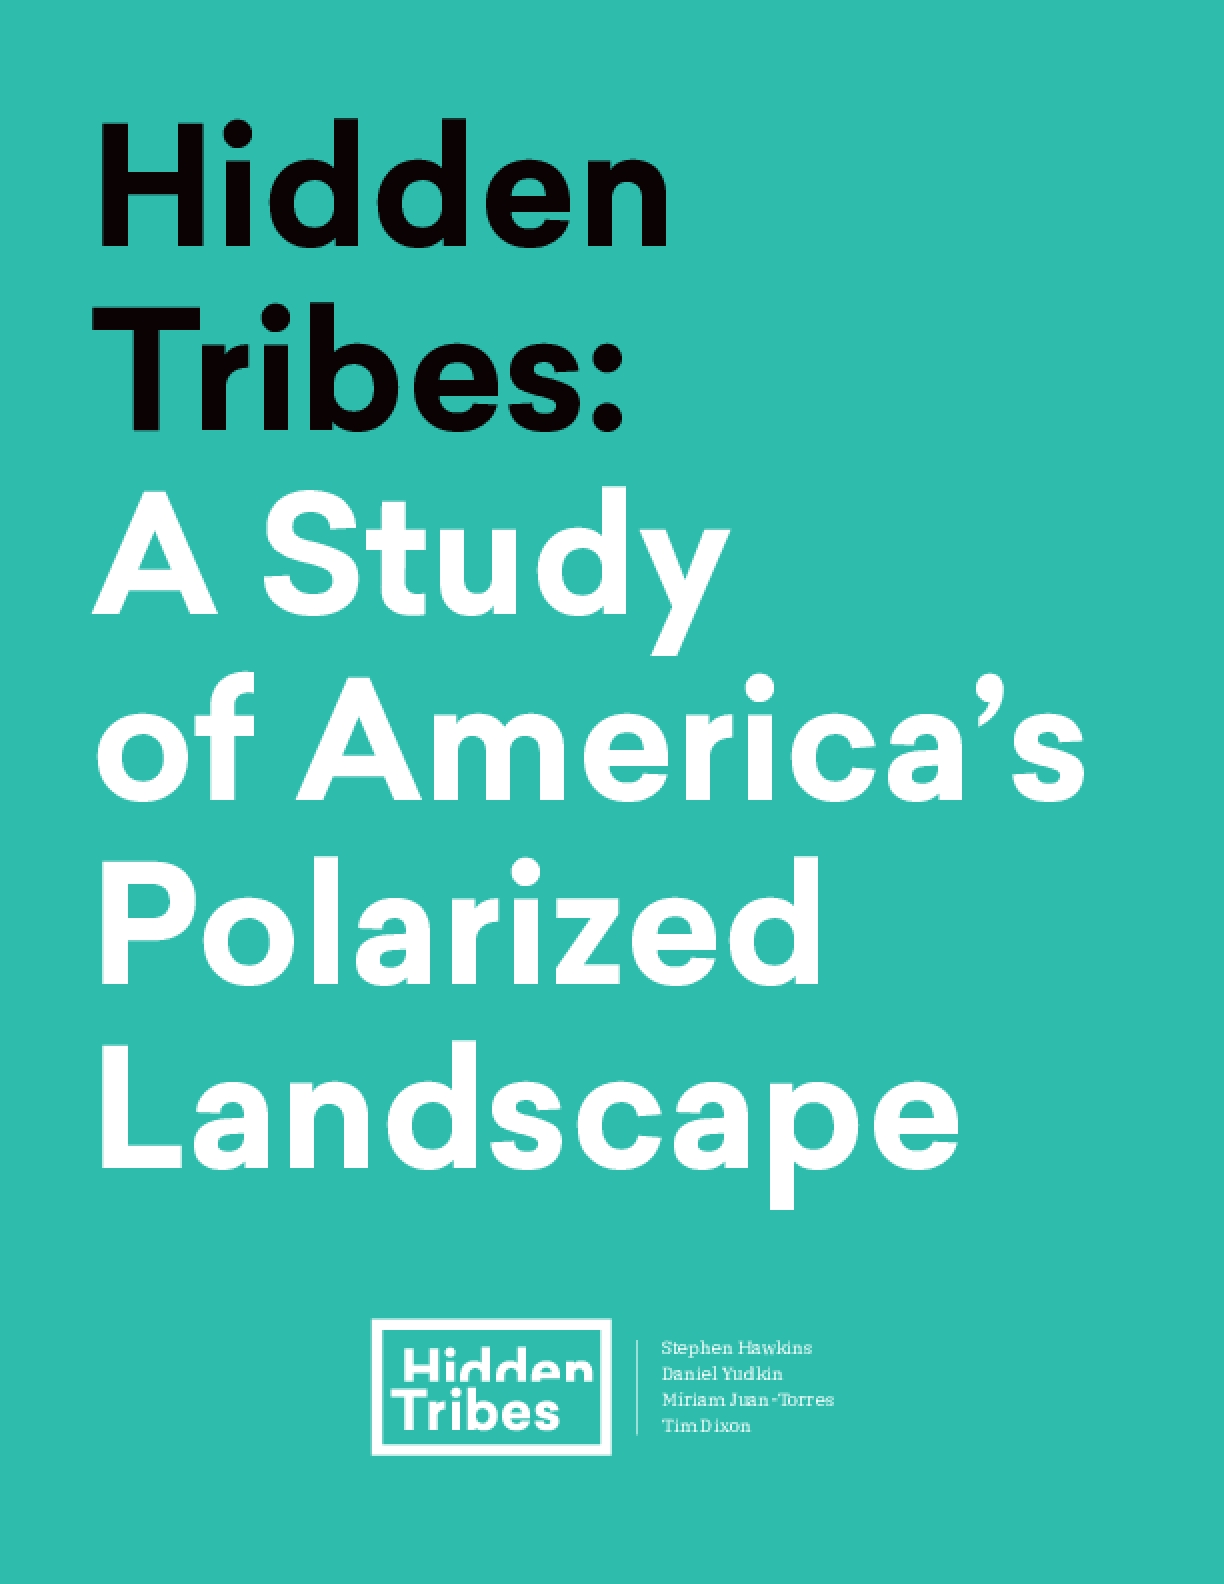 Hidden Tribes: A Study of America's Polarized Landscape